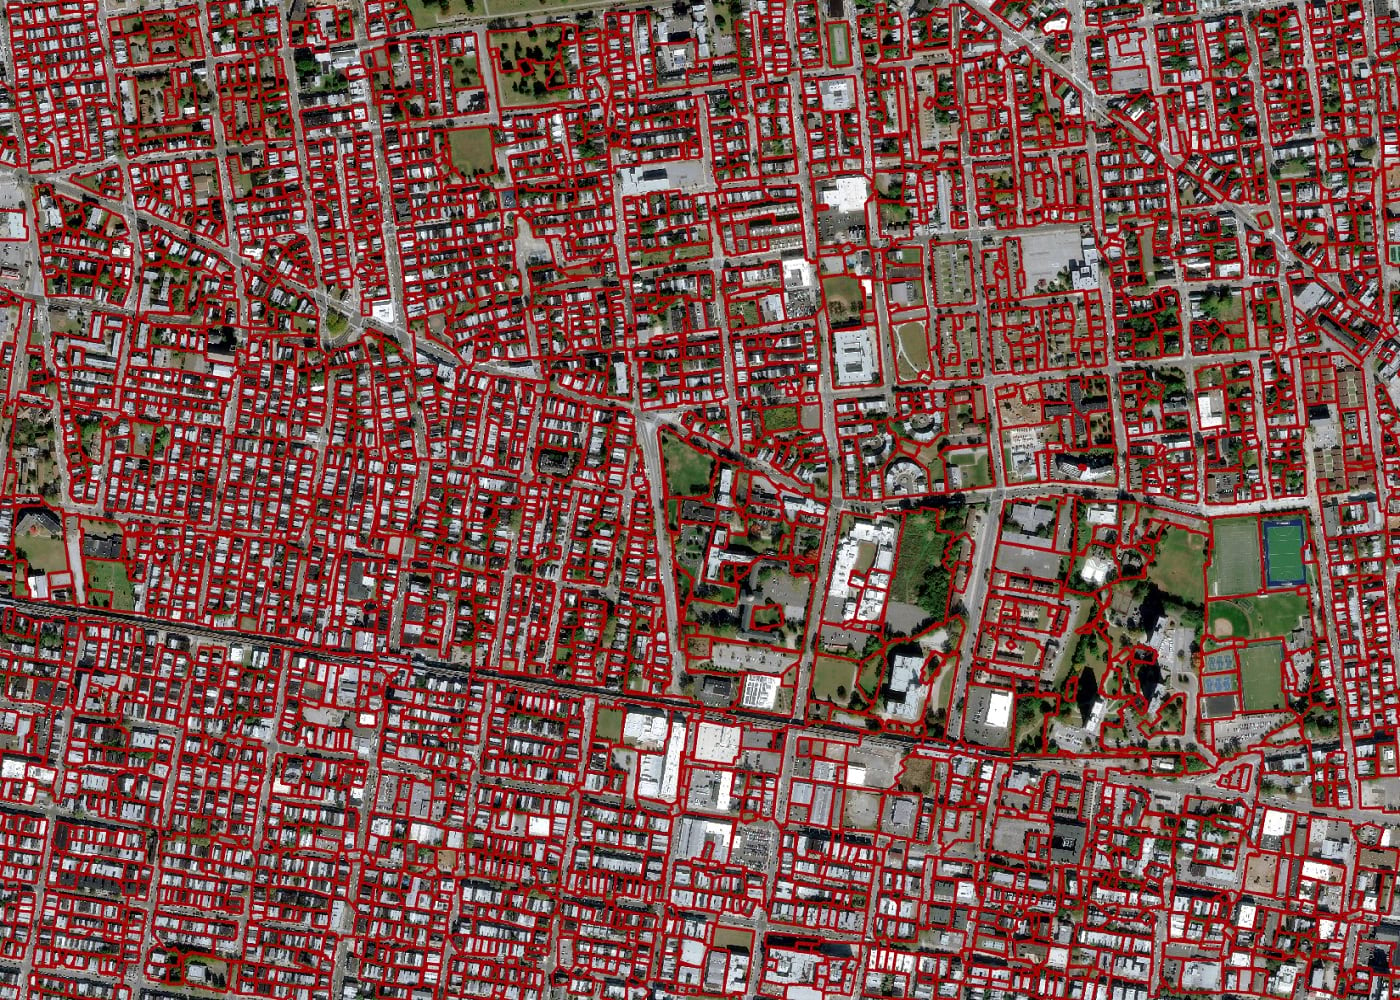 Residential parcels extracted using the pre-trained model